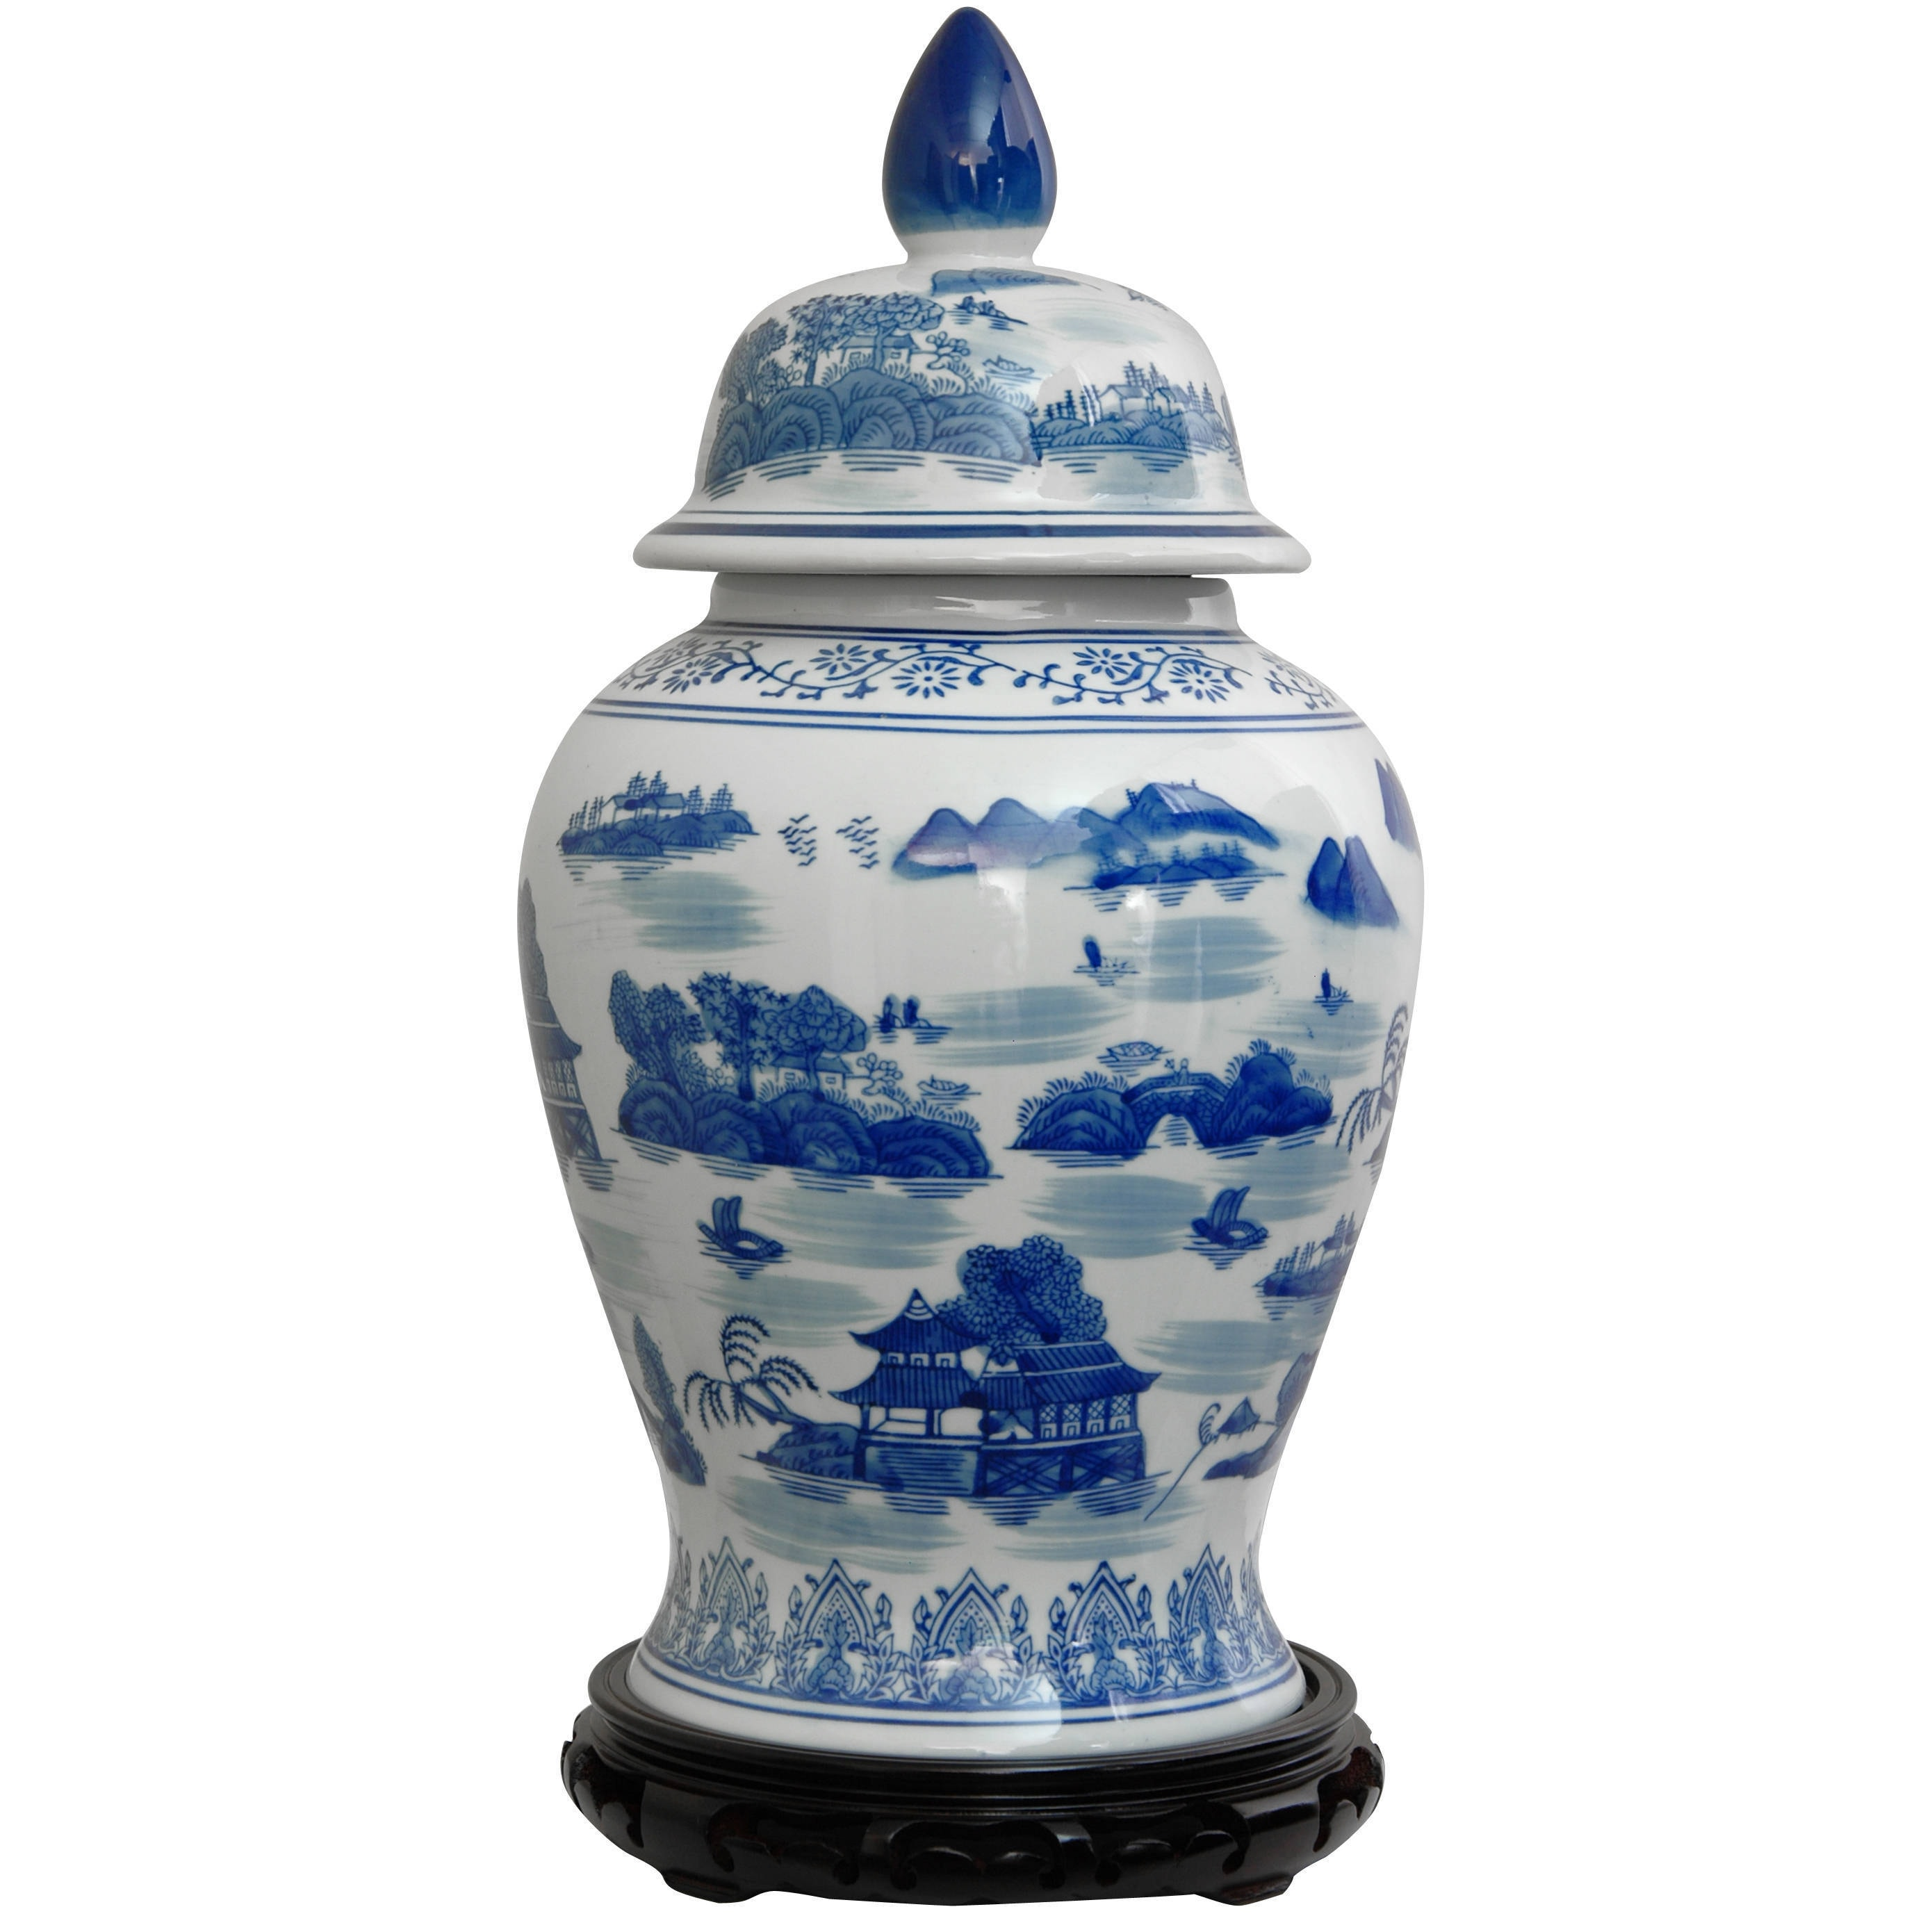 Porcelain 18 Inch Blue And White Landscape Temple Jar China Free Shipping Today 5675343